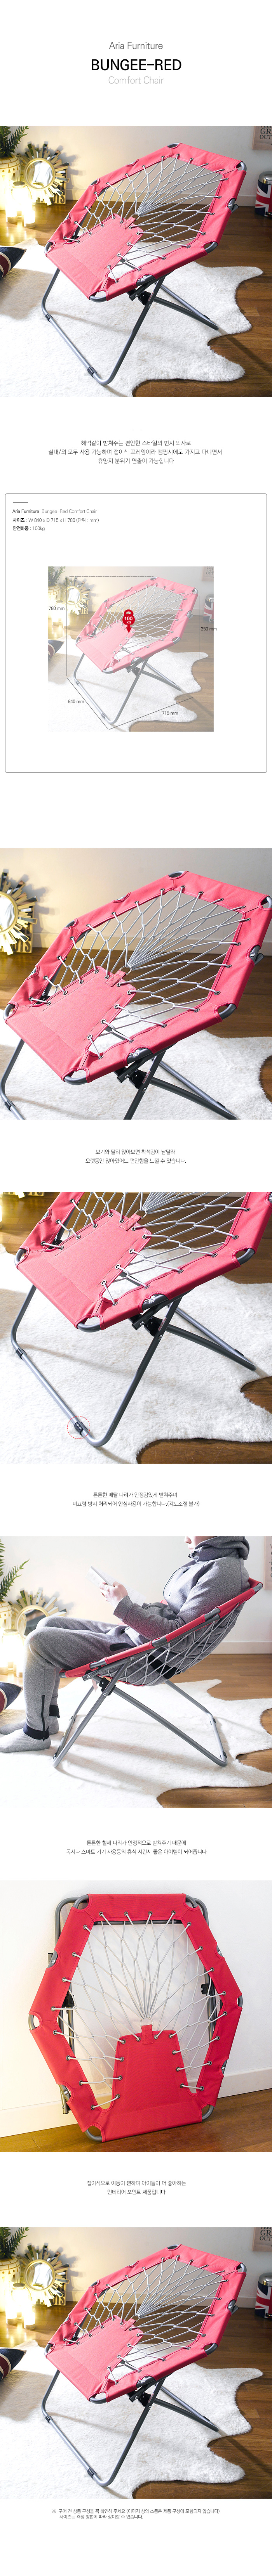 Bungee-Red_Accent_Chair_180228.jpg